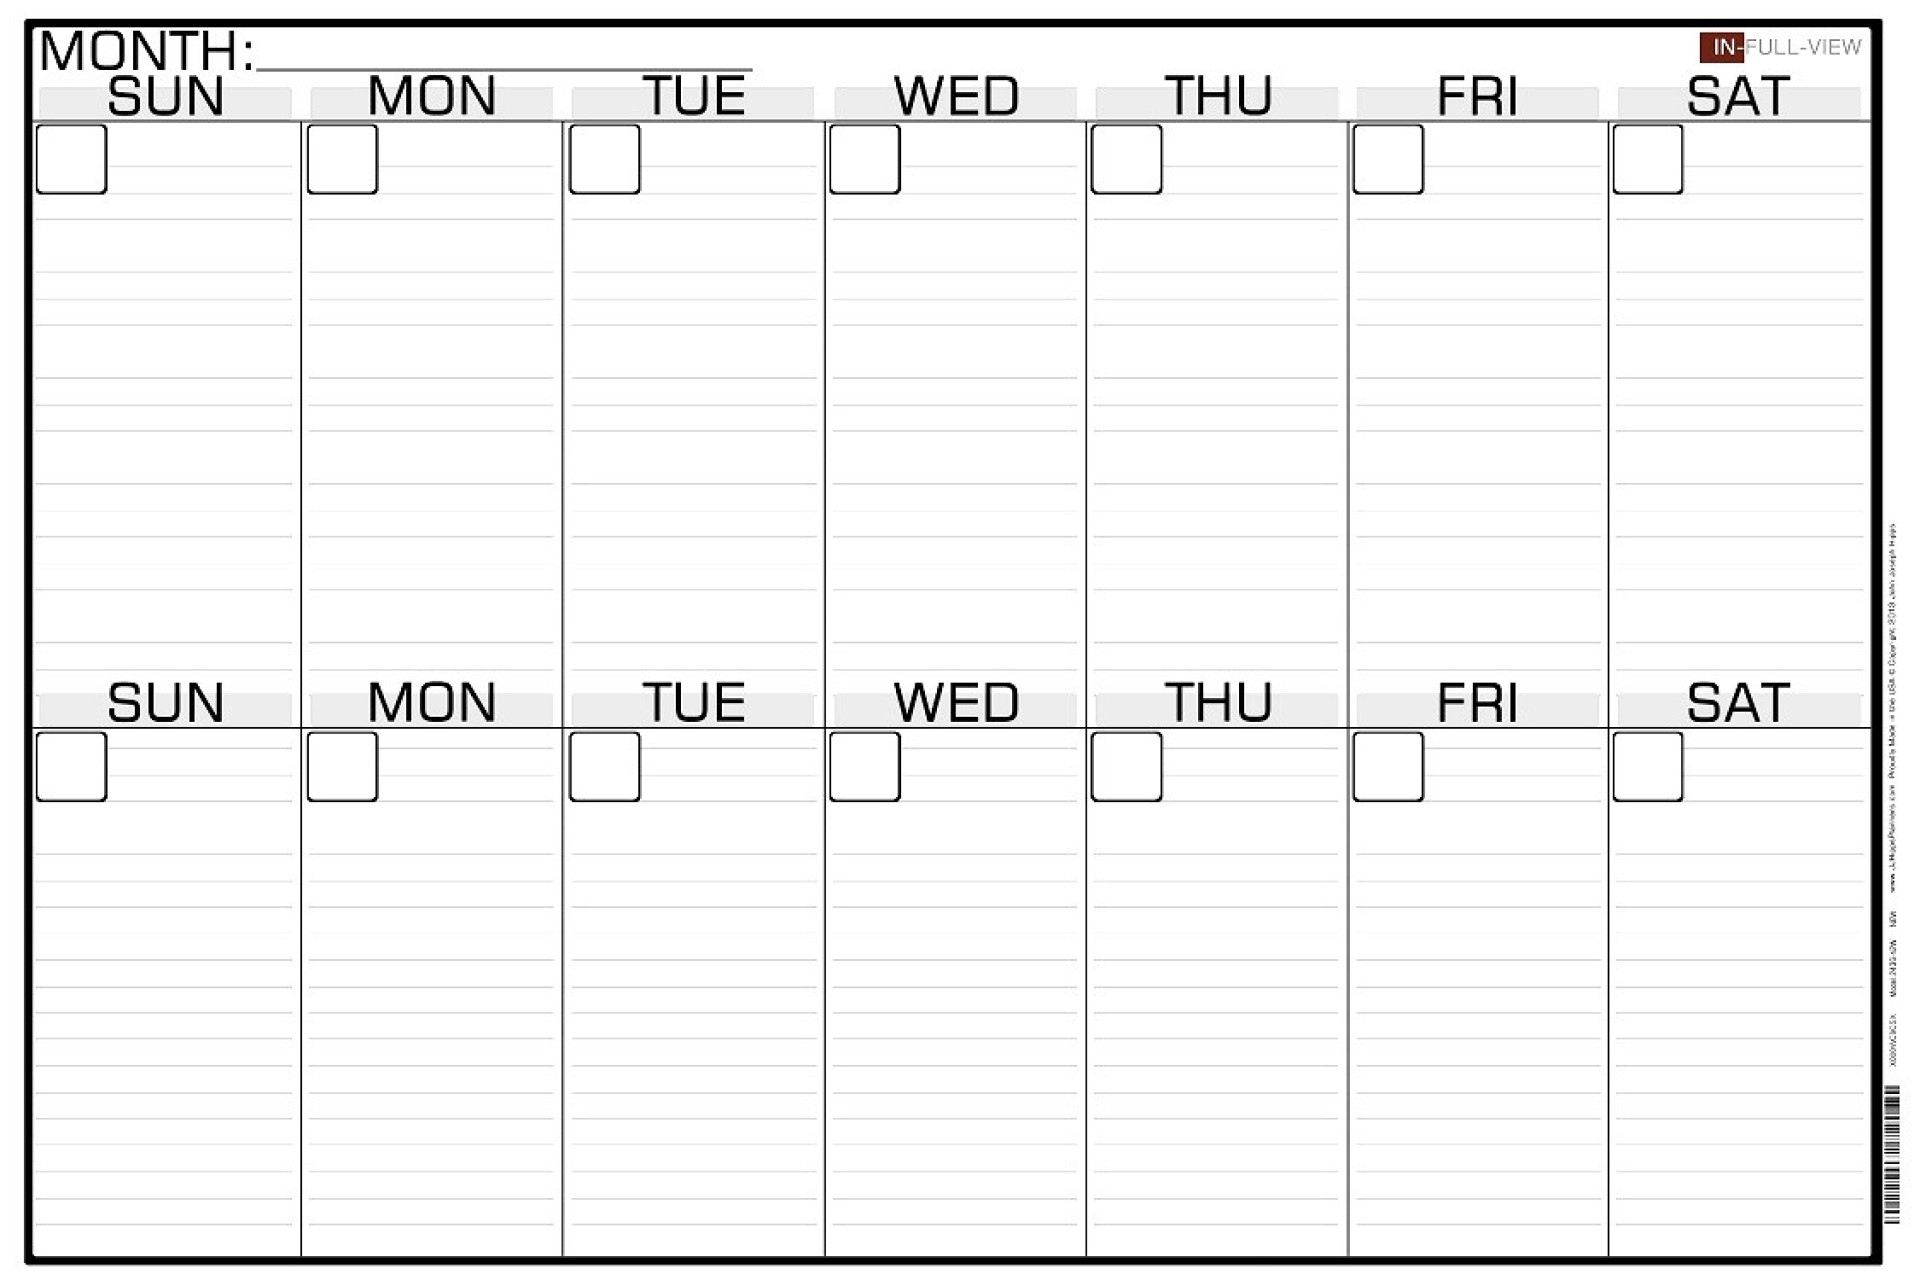 001 20Week Calendar Template Free Templates At Allbusinesstemplates pertaining to Null Blank Calendar To Print